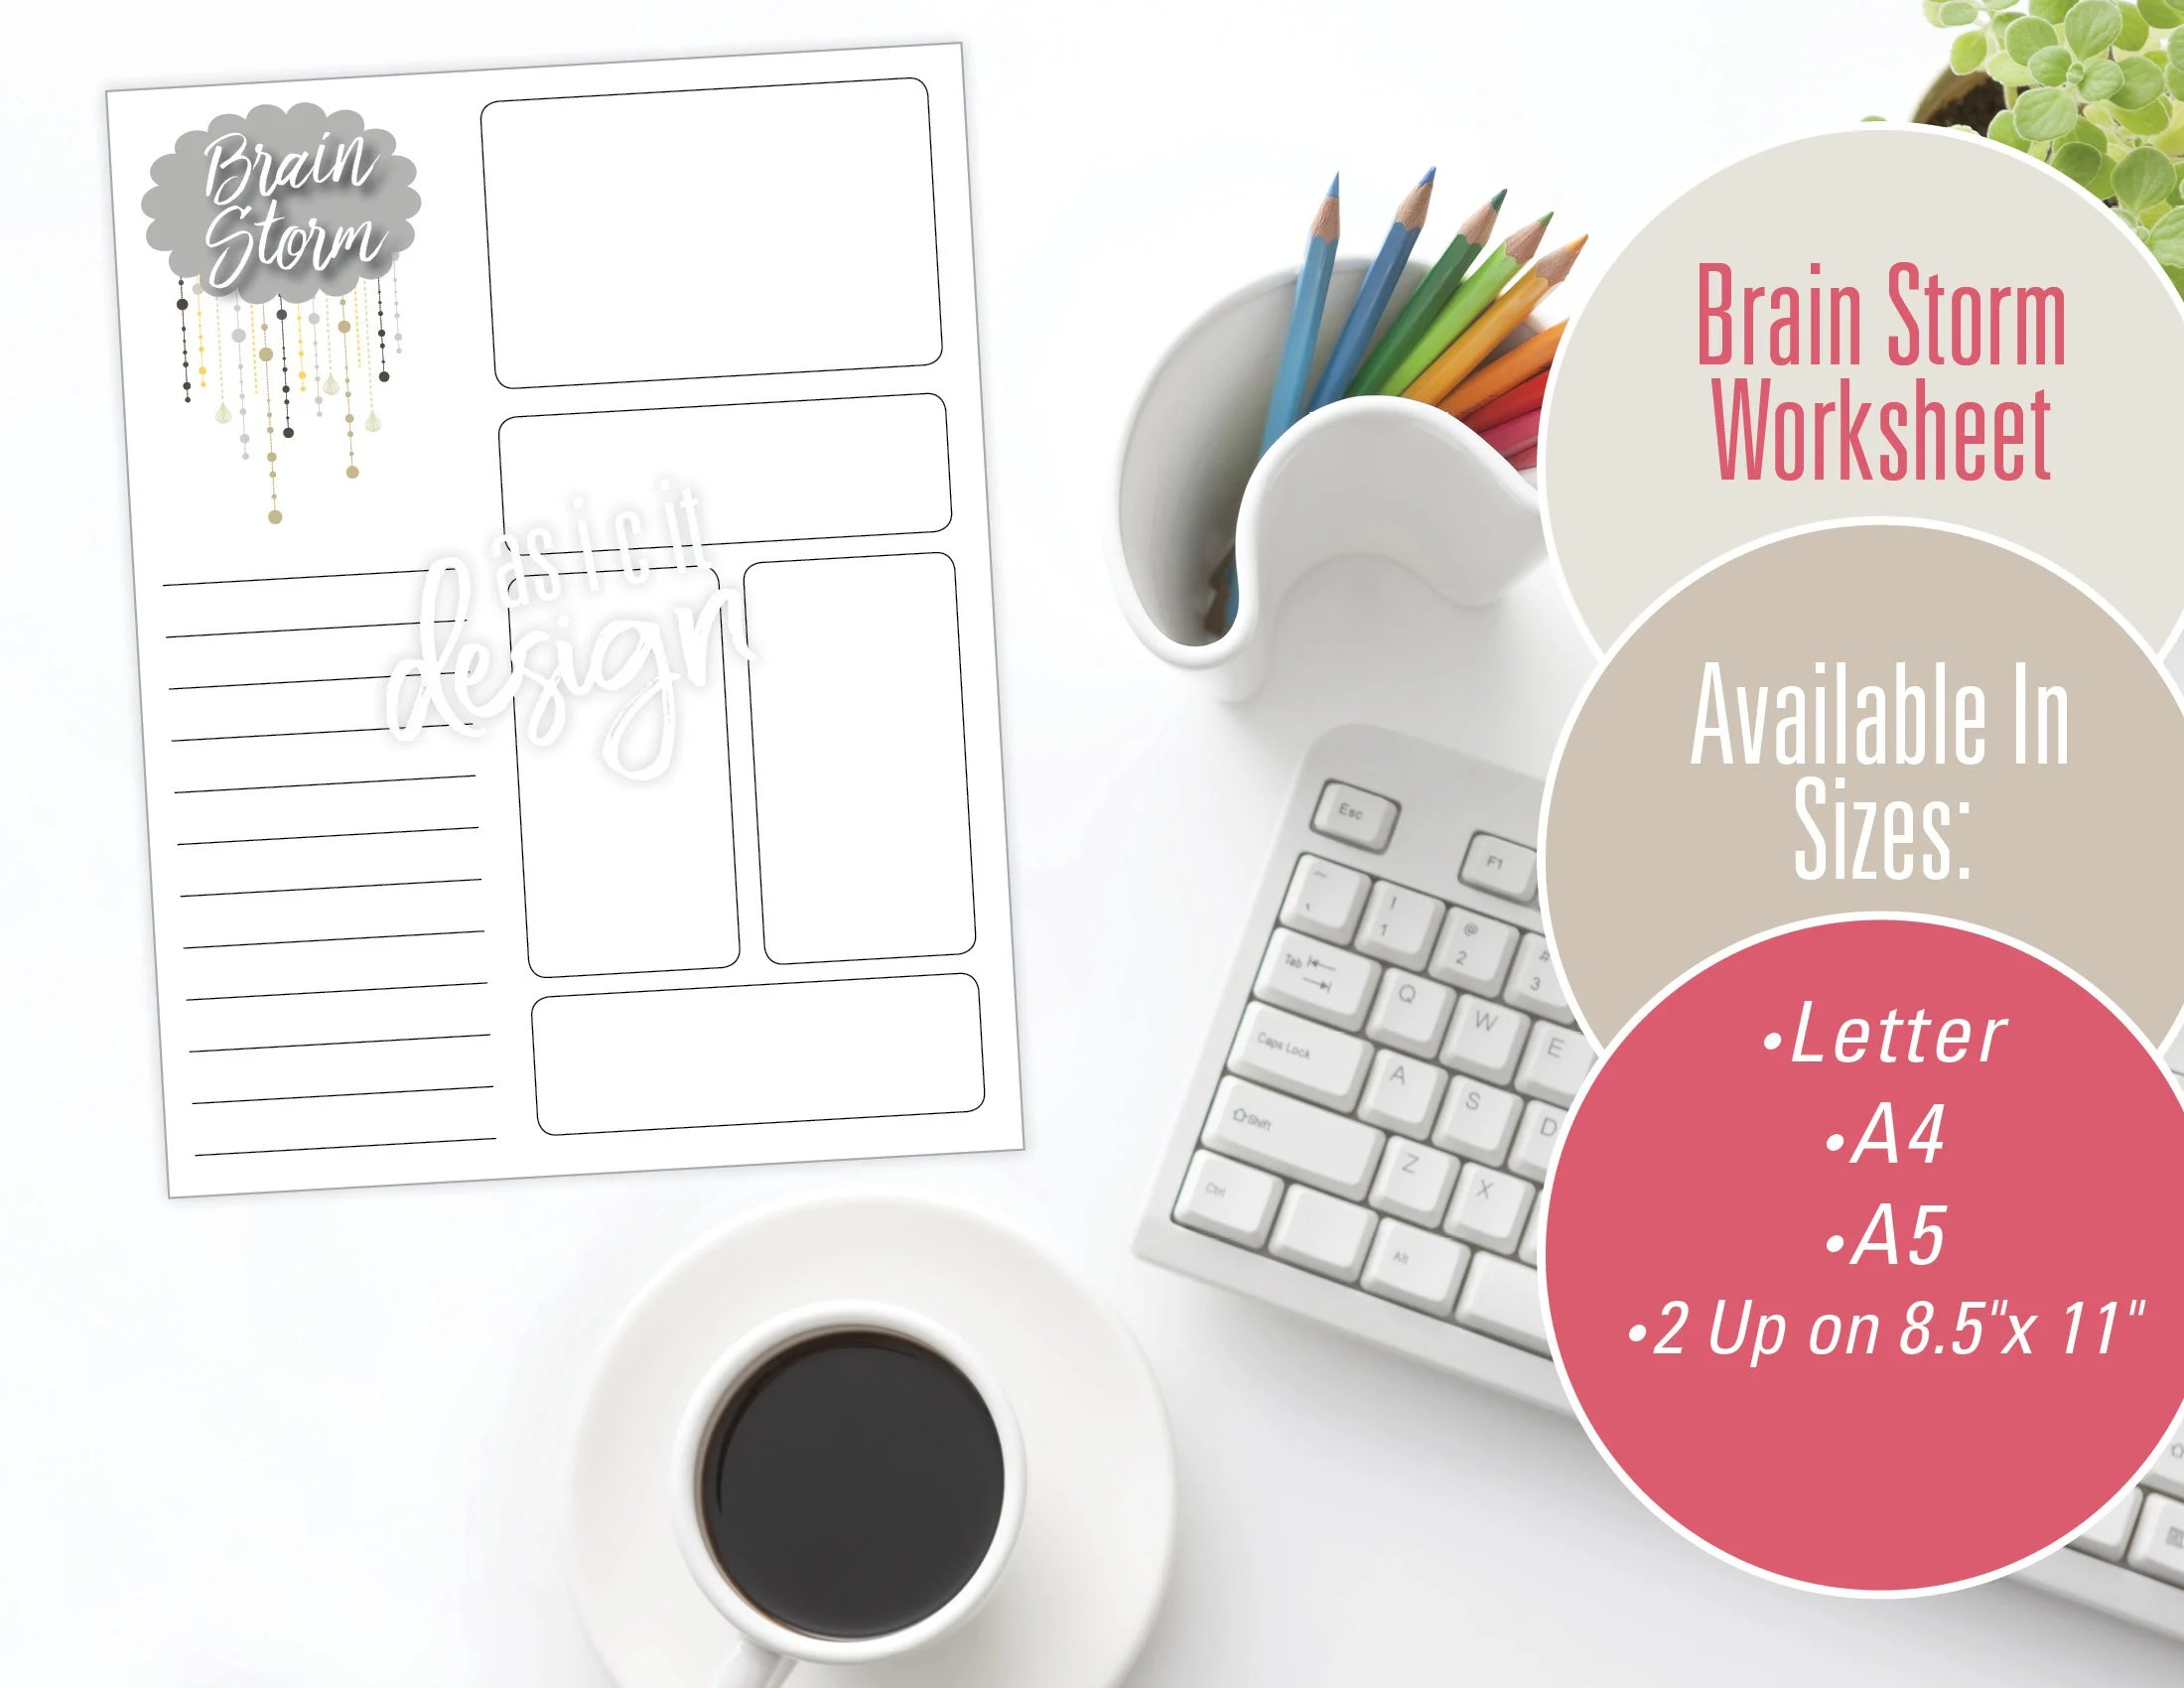 Brain Storm Worksheet